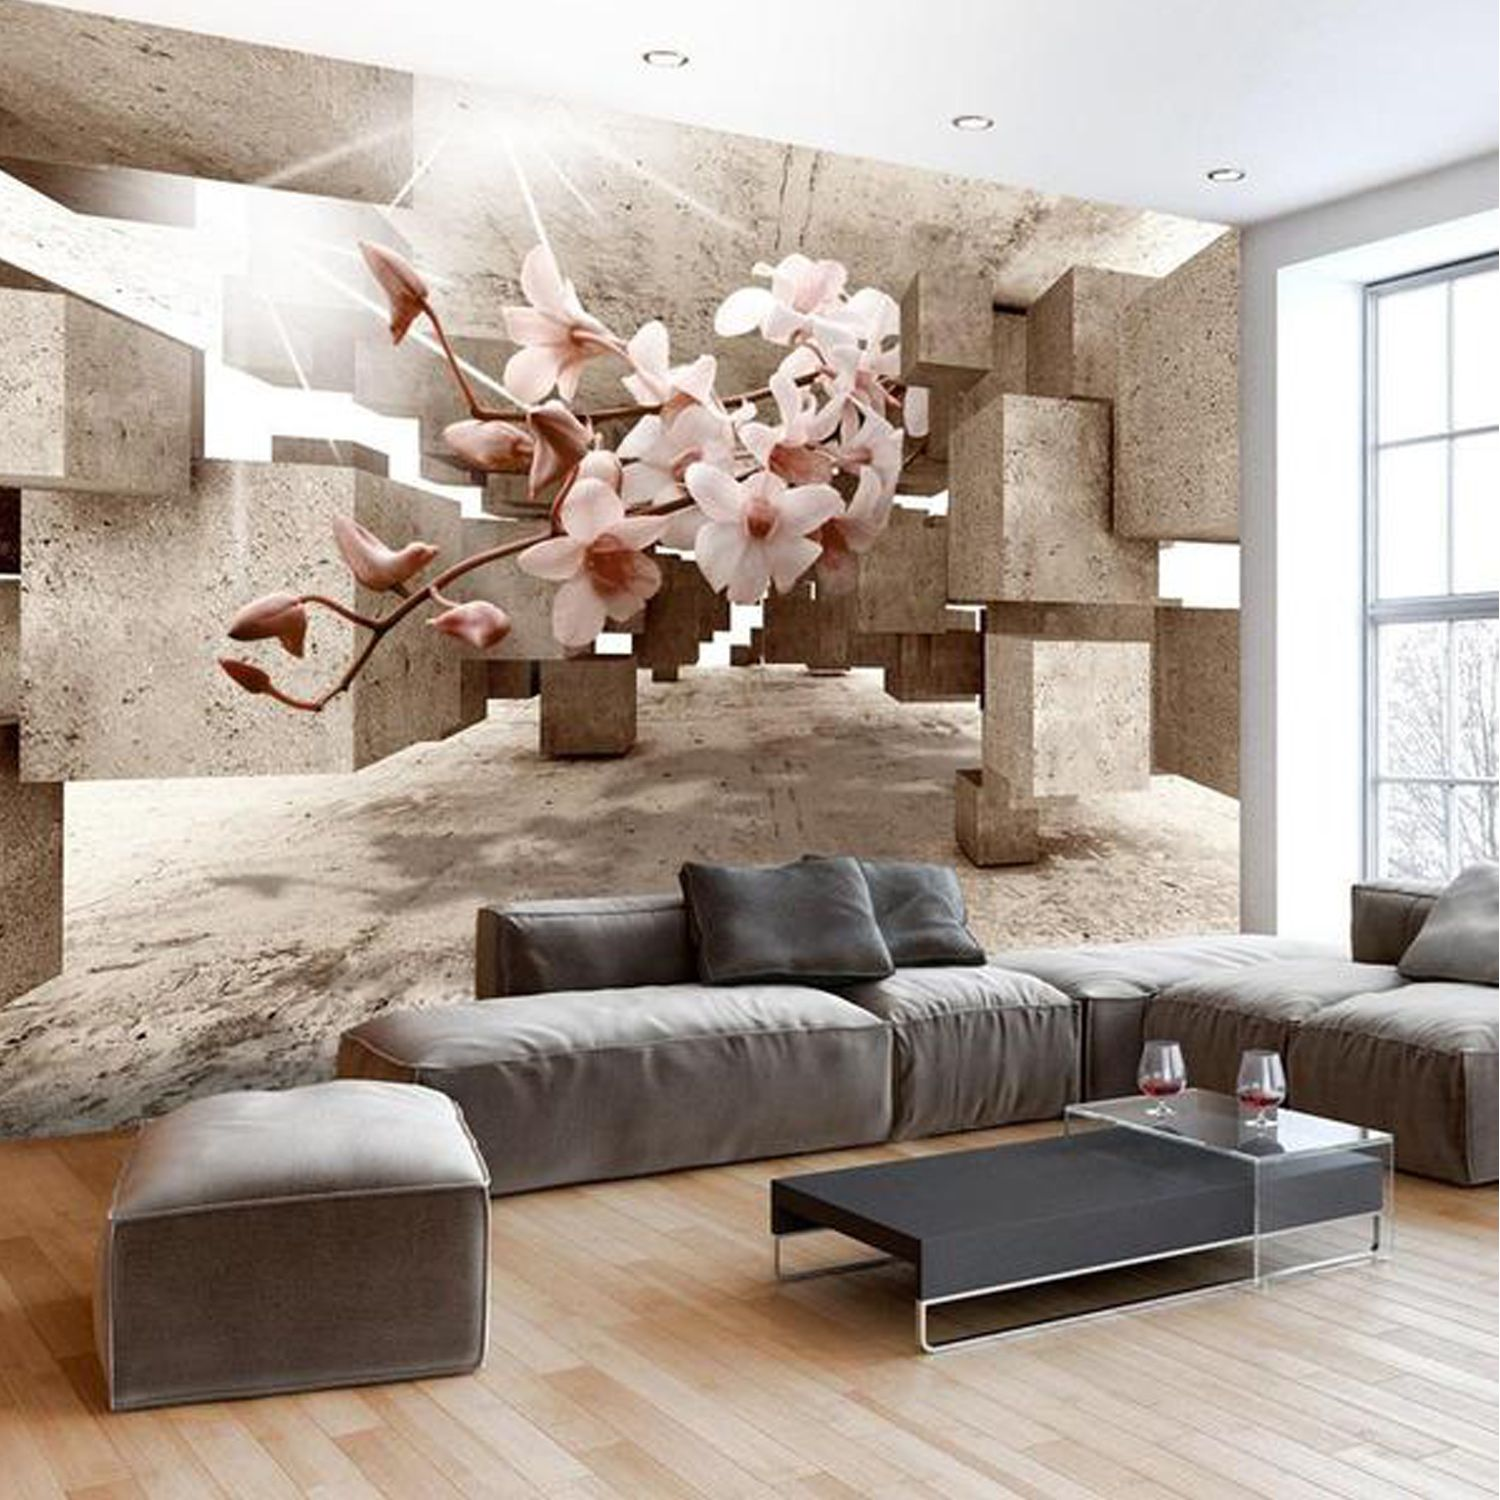 3D Wall mural Little Miracles, 3d wallpaper flowers and